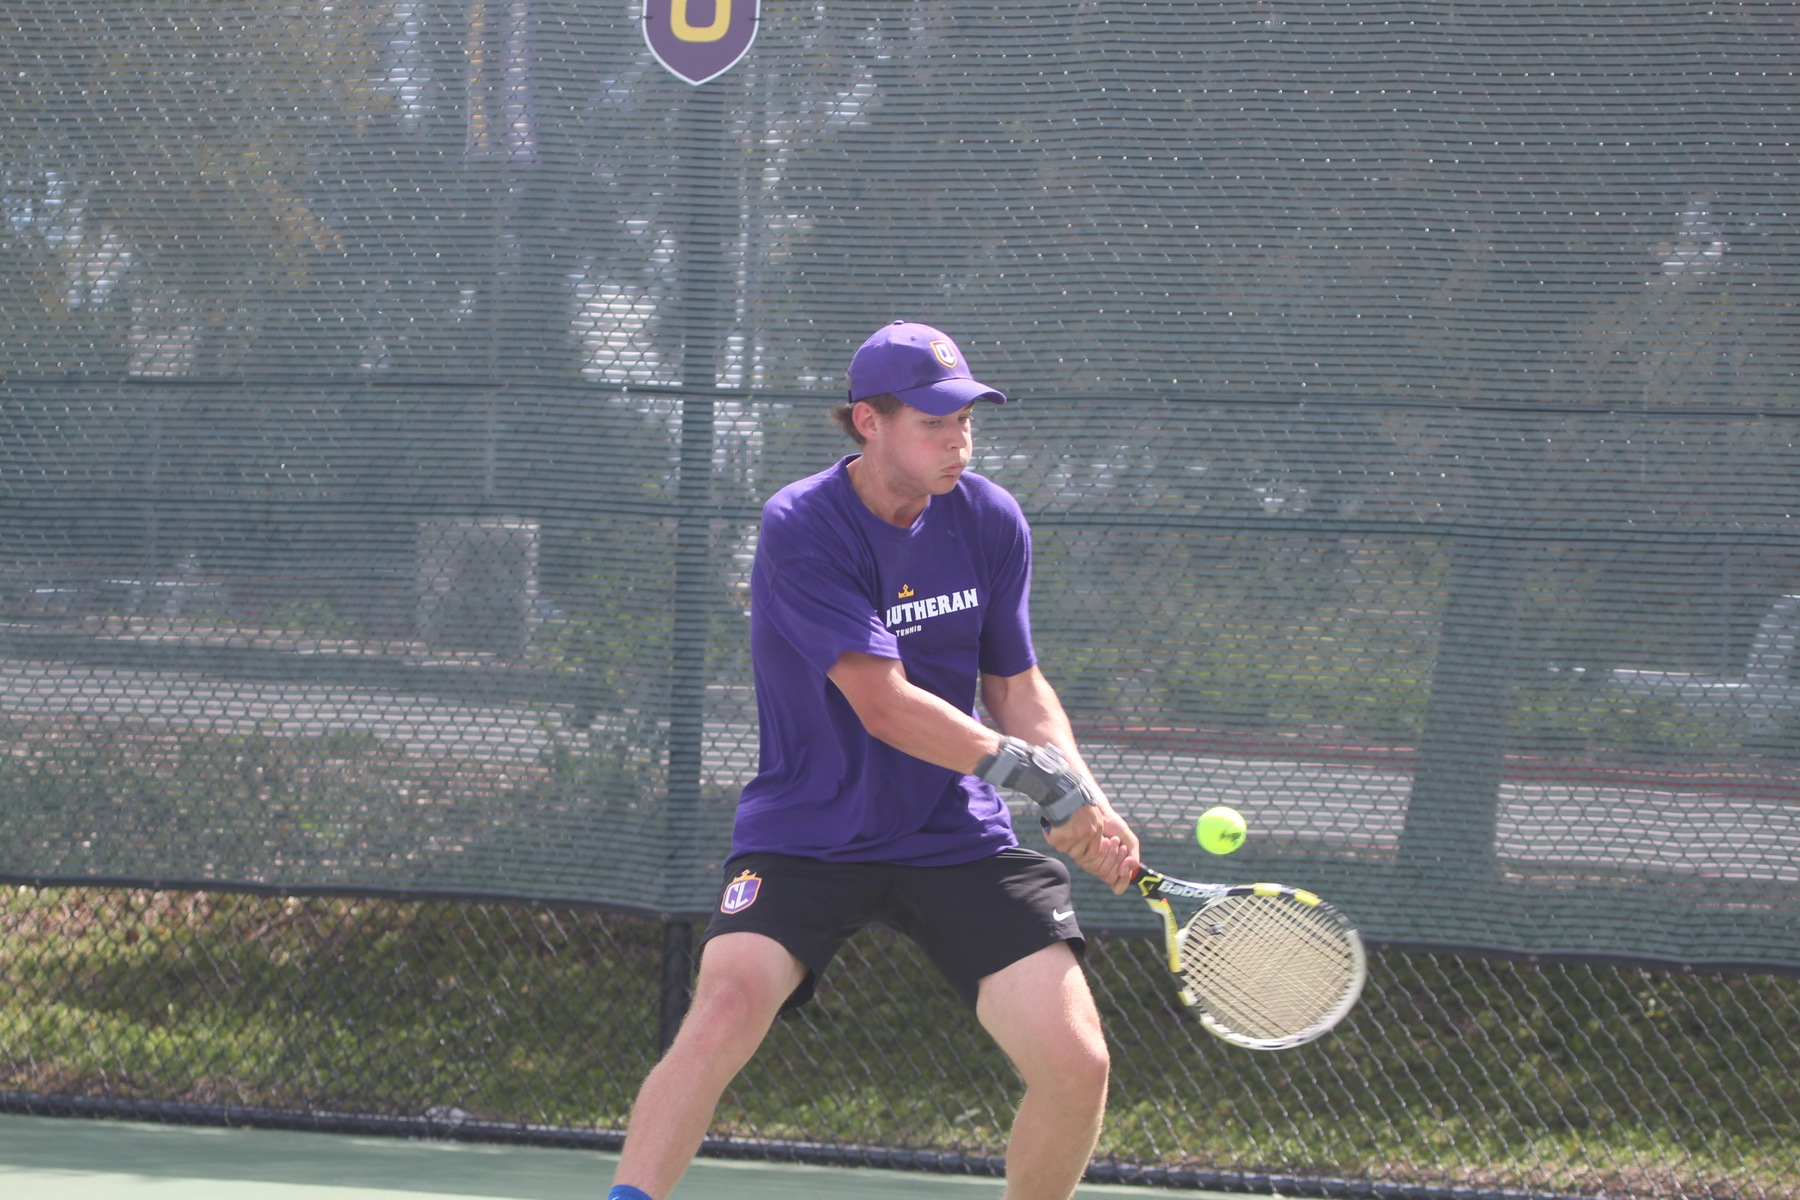 Kingsmen Travel to Ojai for the 119th Annual USTA Tournament